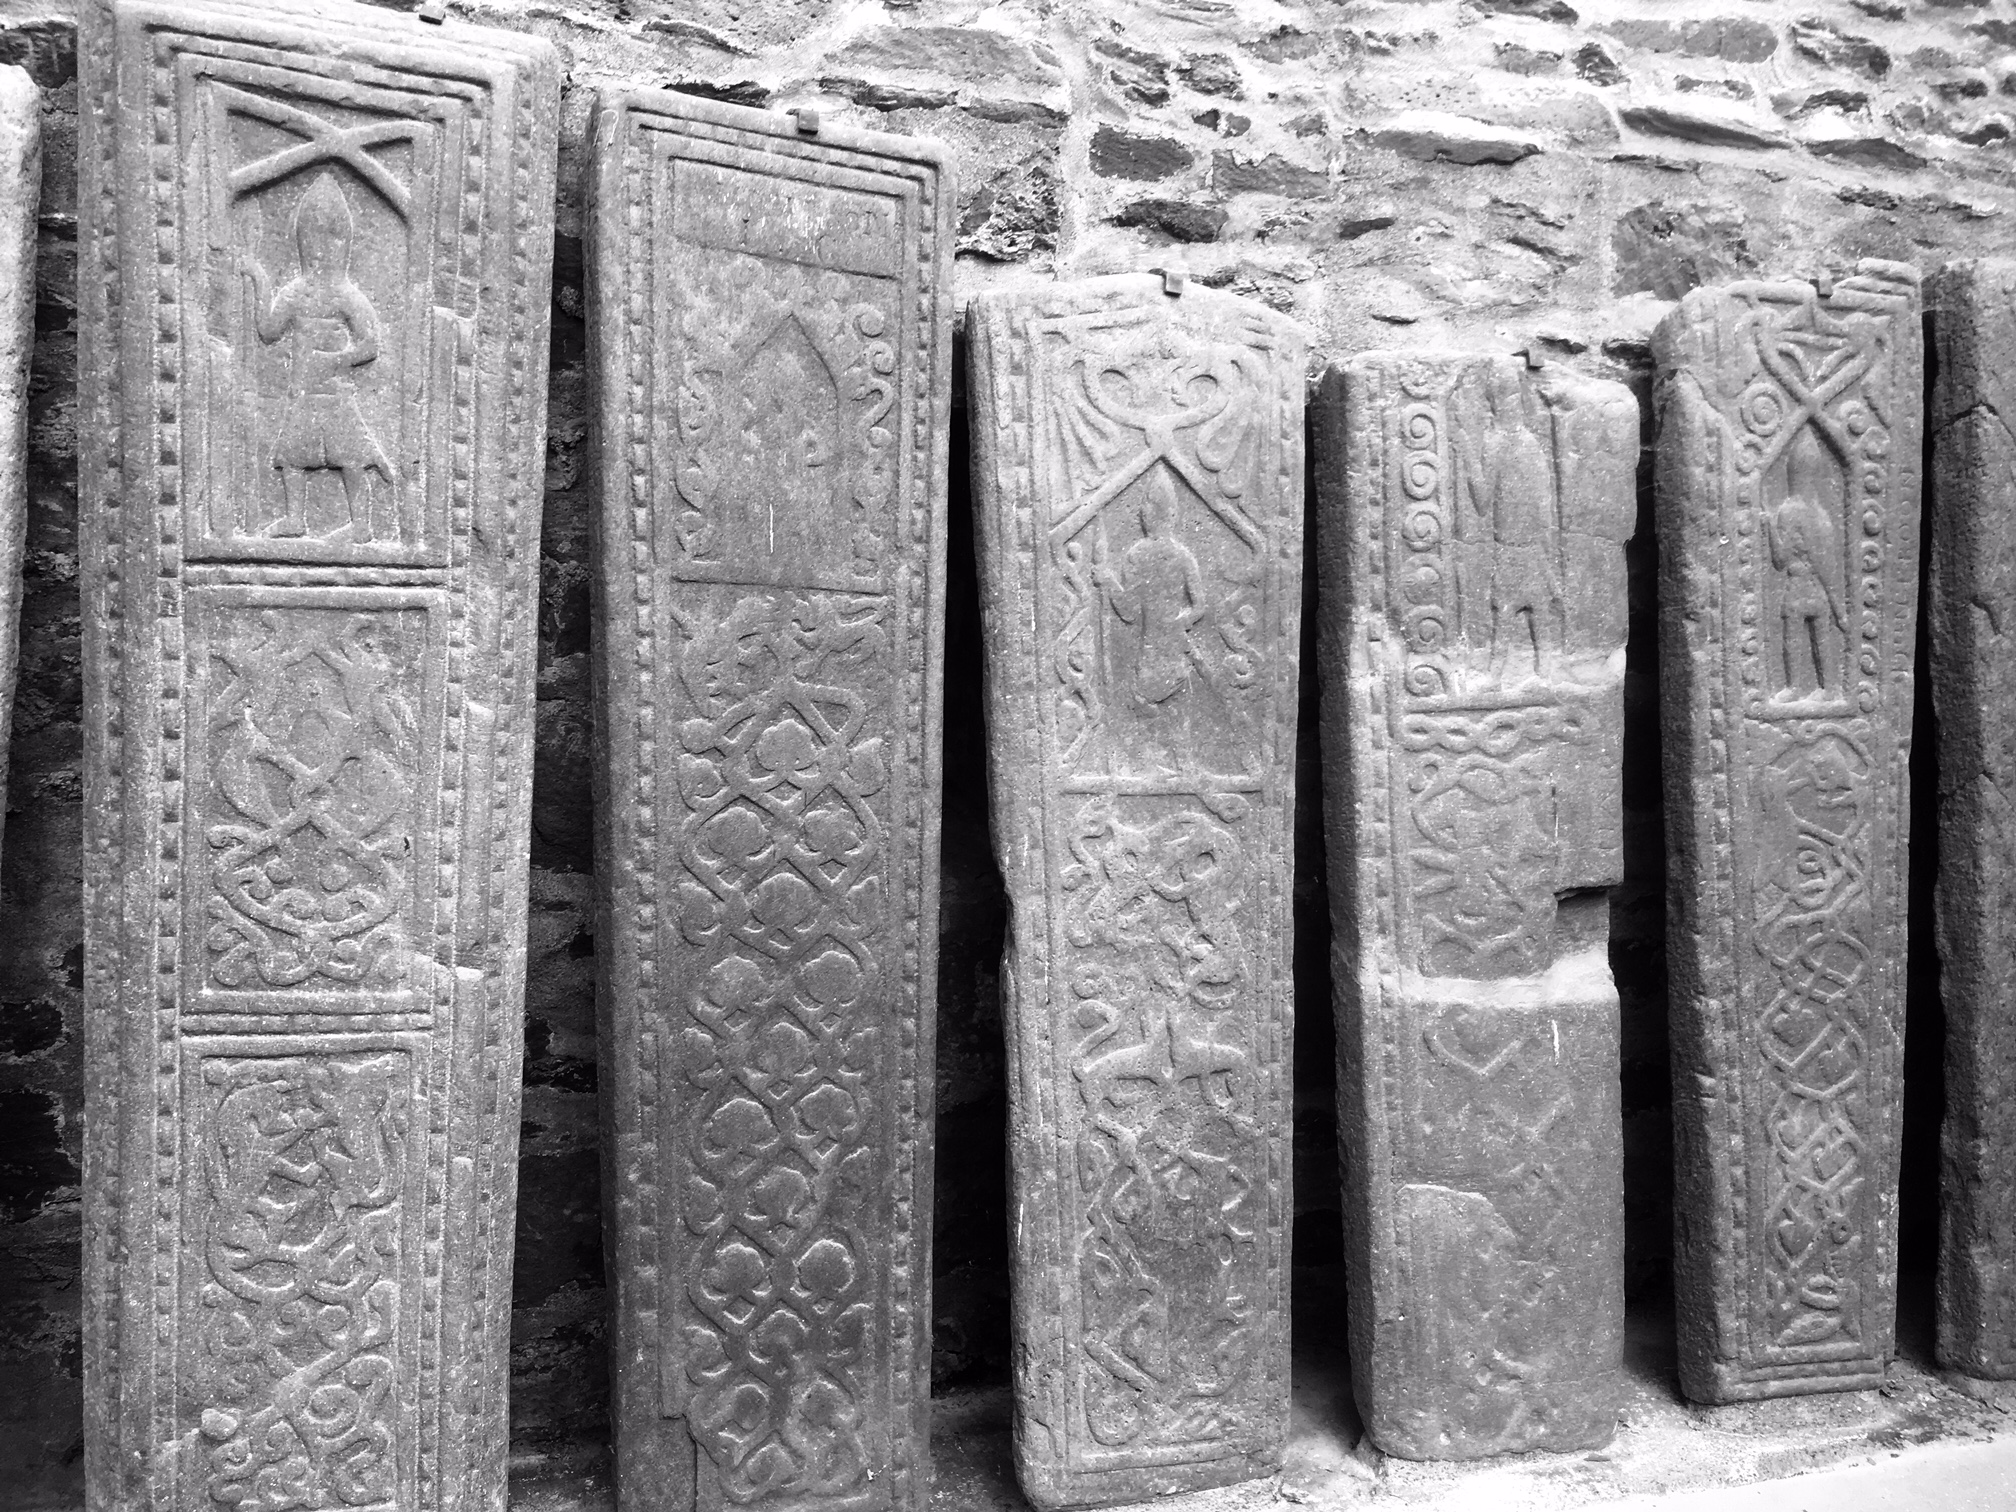 Grave slab carvings from 900s to 1600s - can you spot the unicorn?